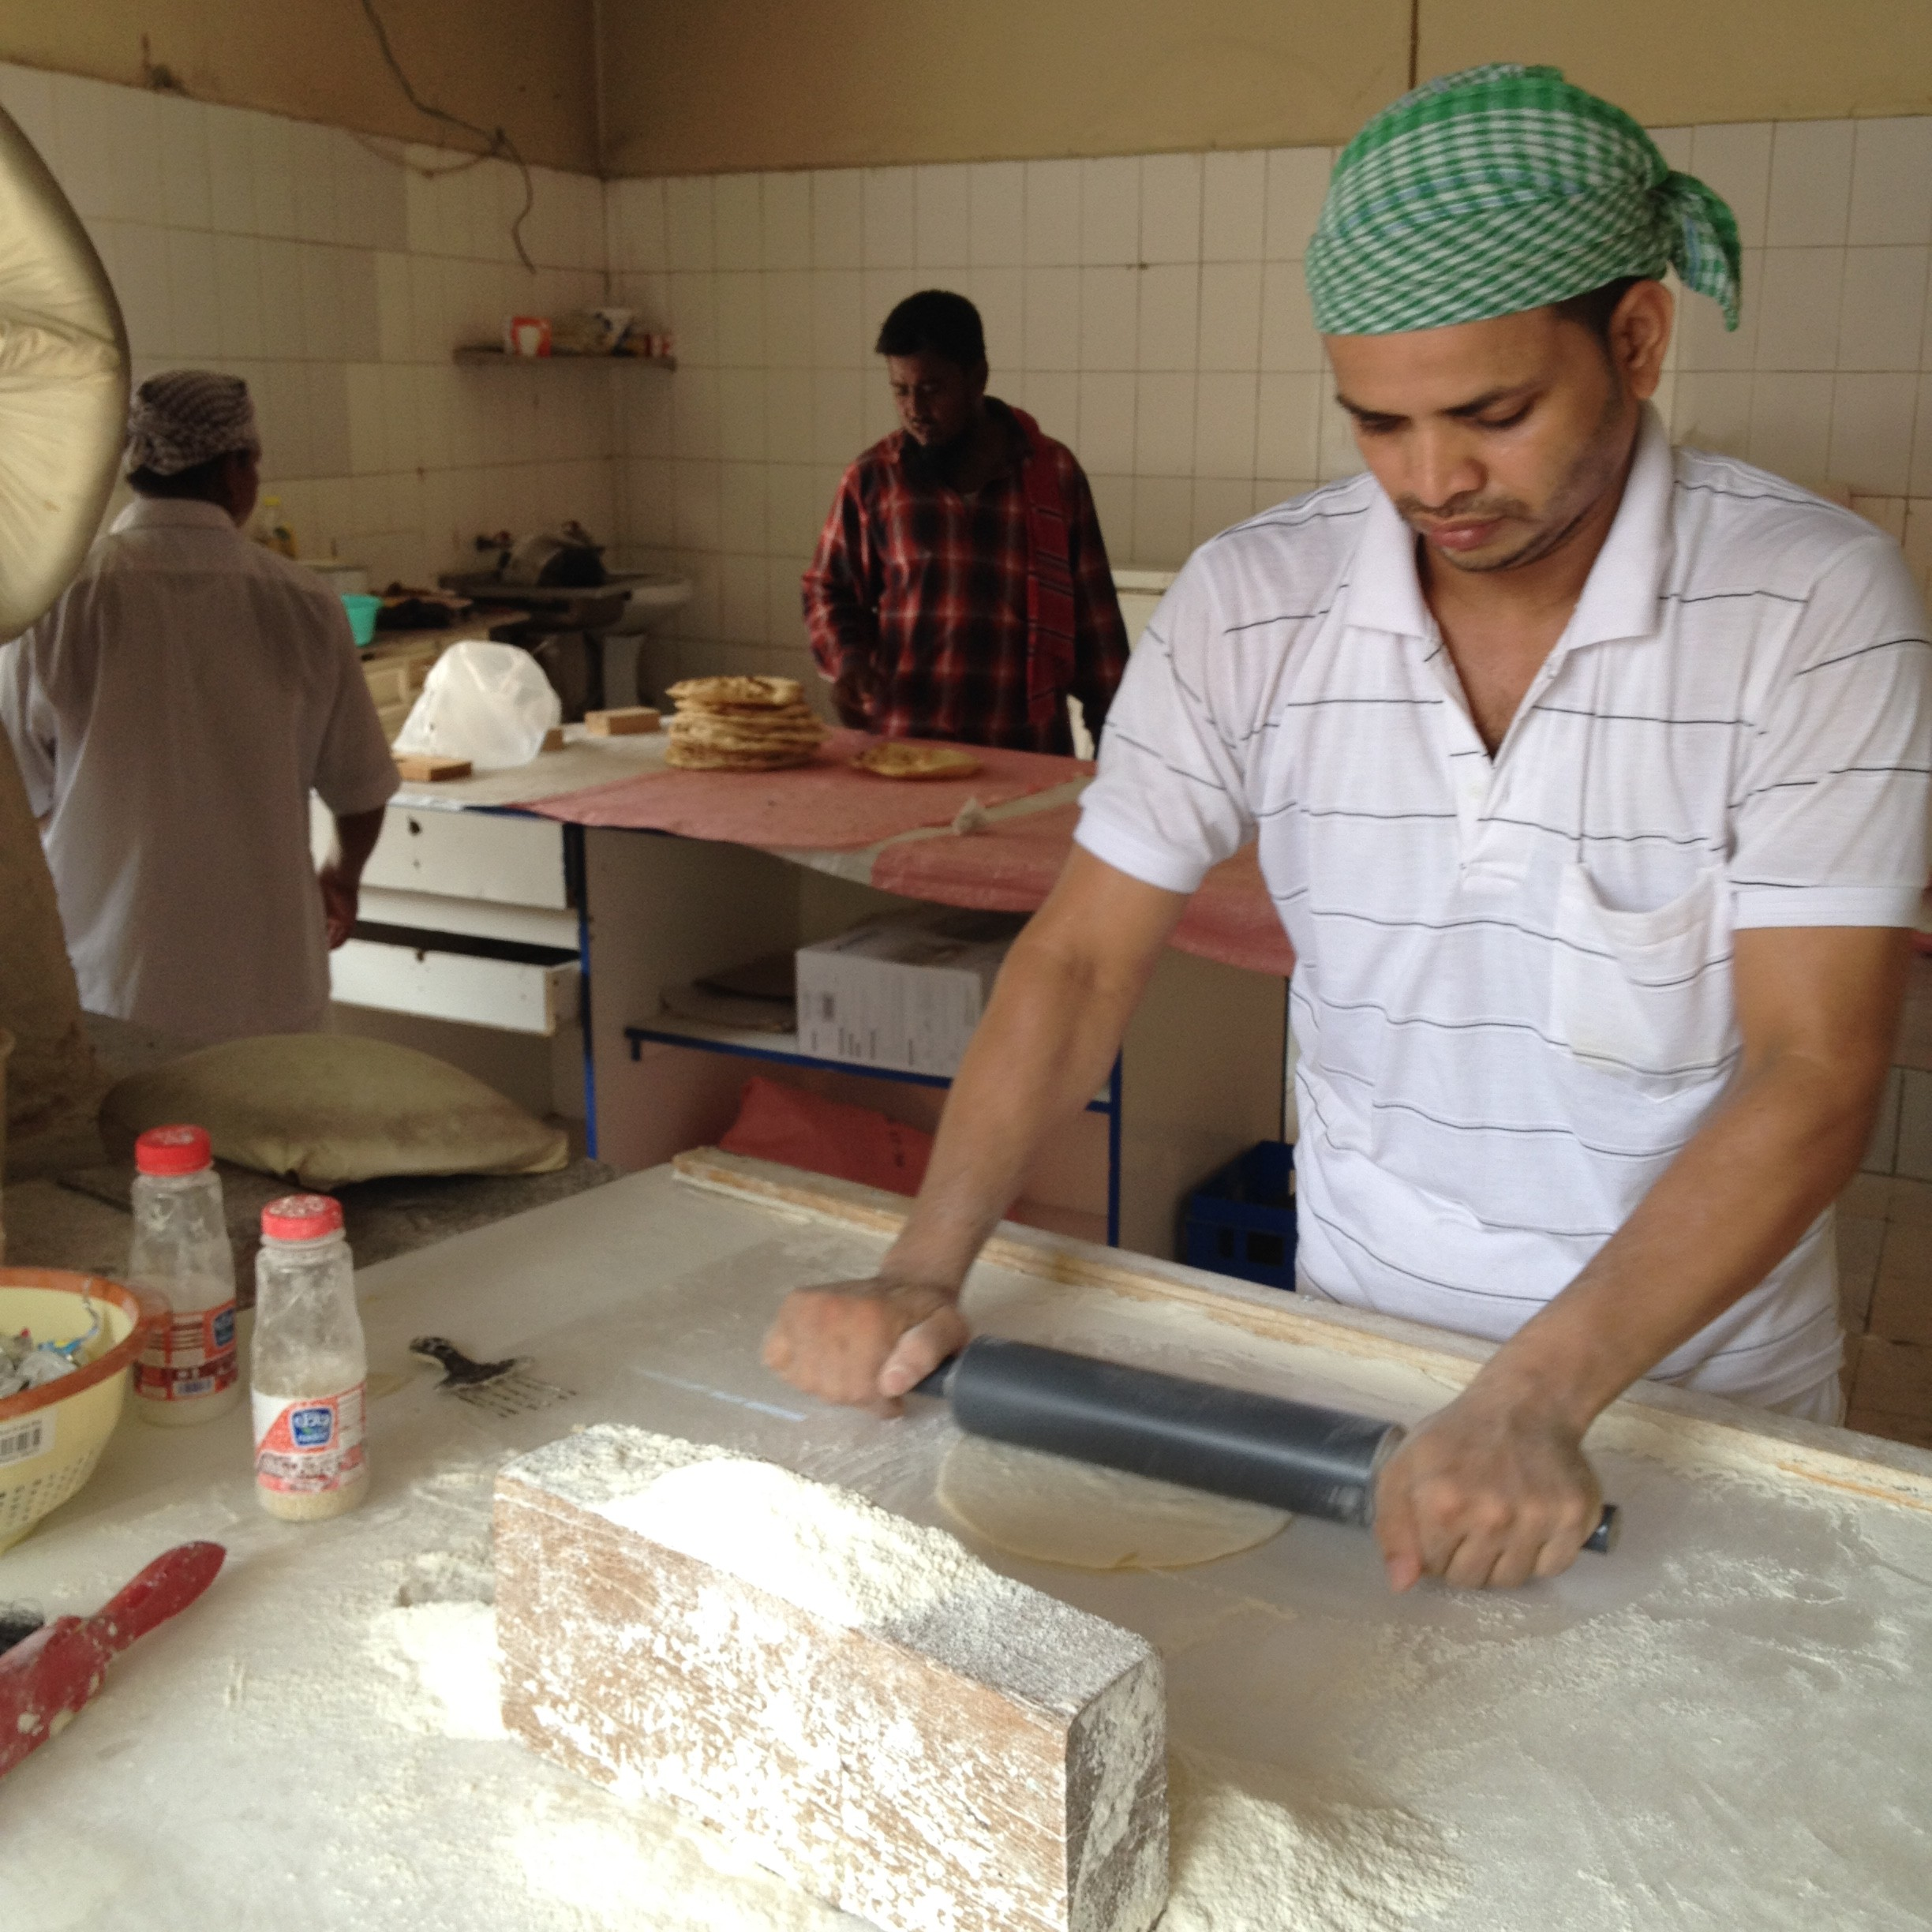 Migrant workers operate the local bakeries in Bahrain. In the Gulf region, these bakeries offer their fresh bread at cheap rates than the packaged bread sold in supermarkets. Bakers endure working around high temperature stone chambers all day, taking breaks from work only for prayers.